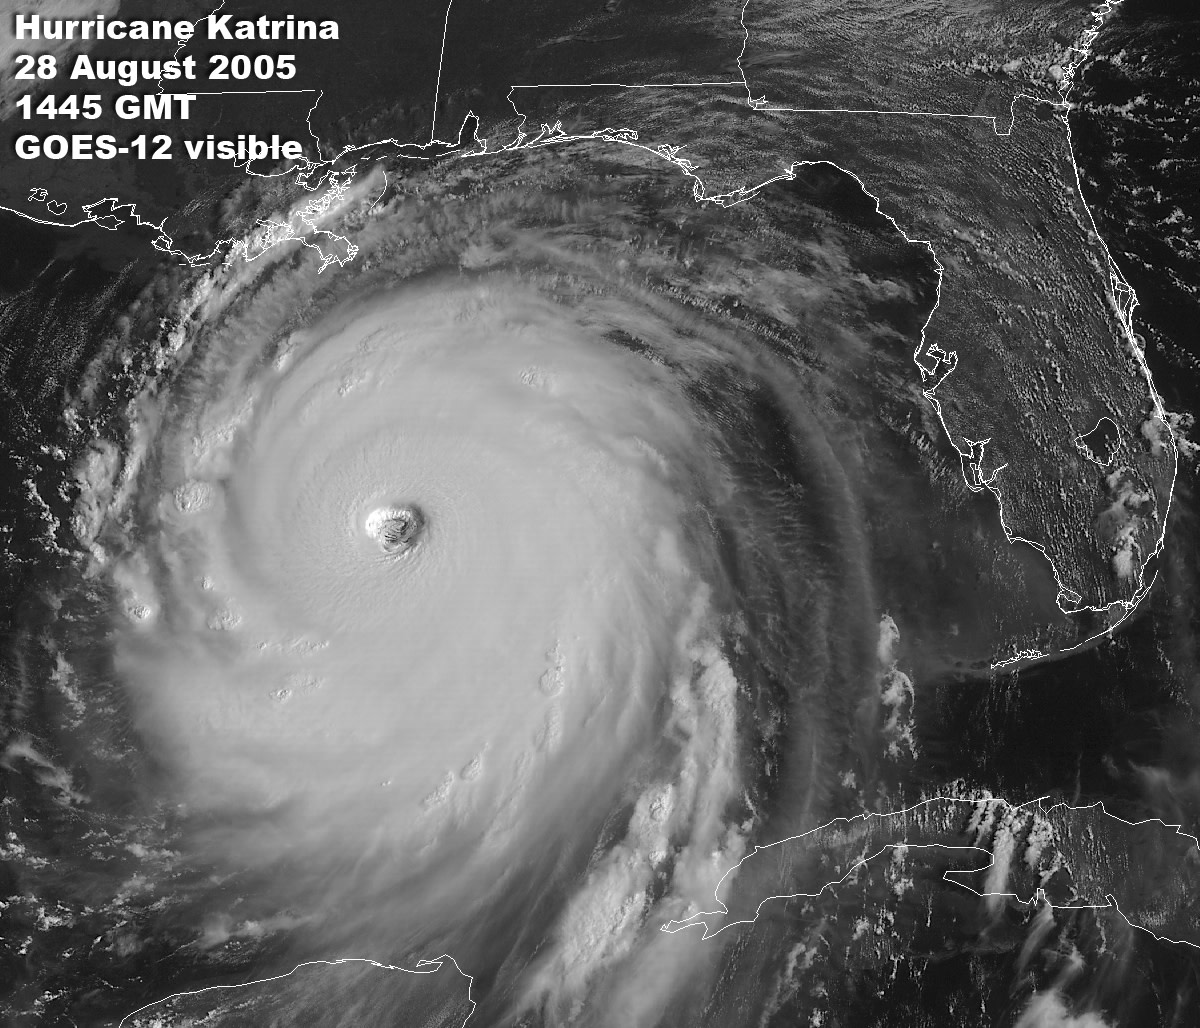 Hurricane Katrina at its peak, before making landfall on the Gulf coast.